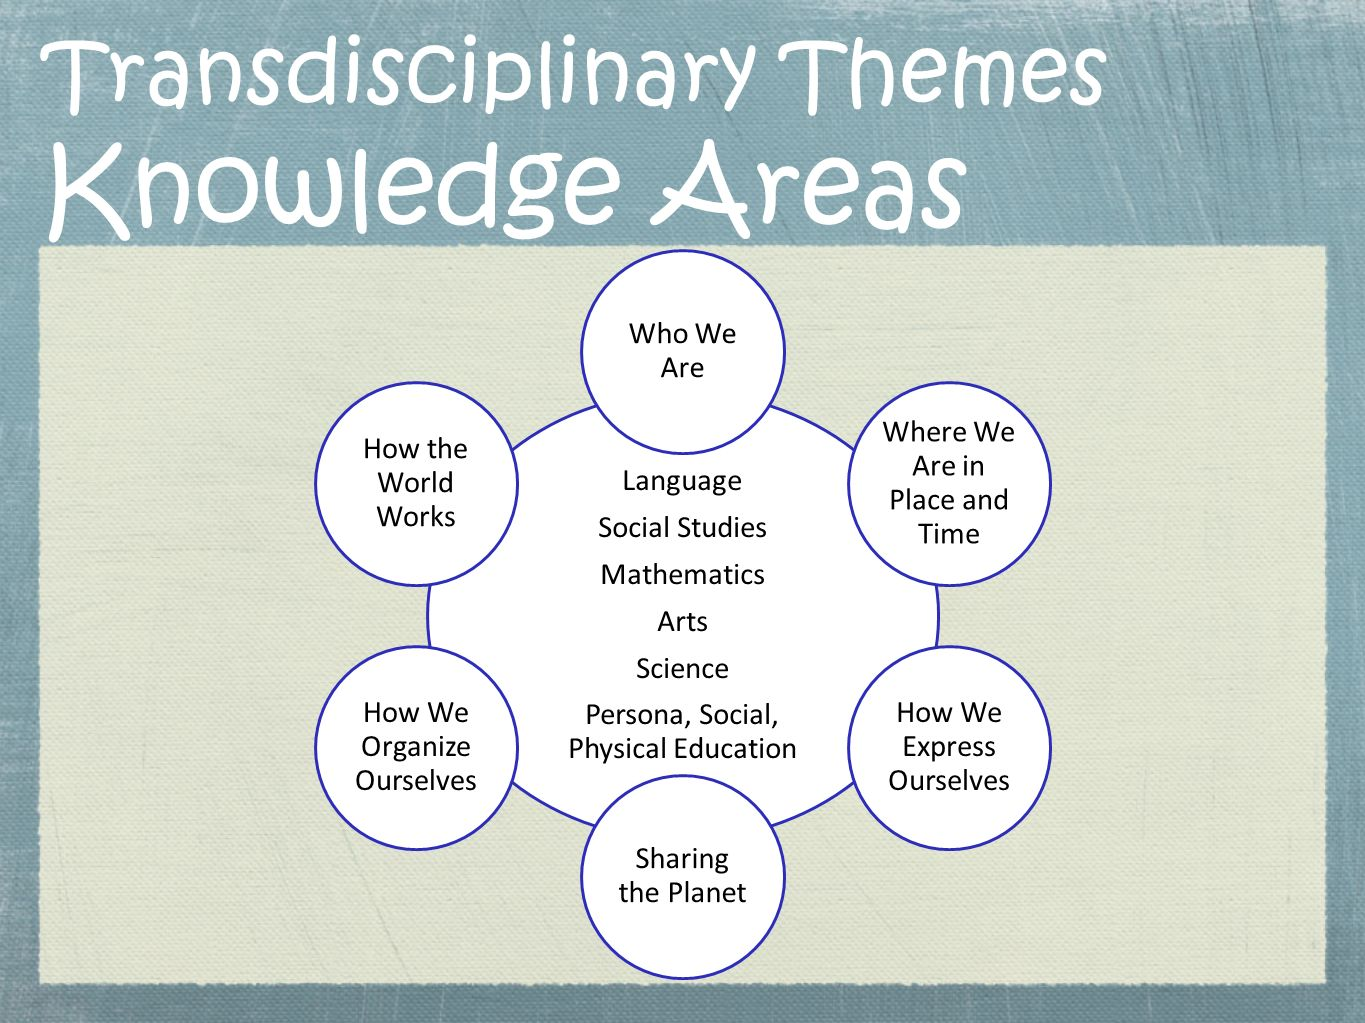 Transdisciplinary Themes Knowledge Areas Language Social Studies Mathematics Arts Science Persona, Social, Physical Education Who We Are Where We Are